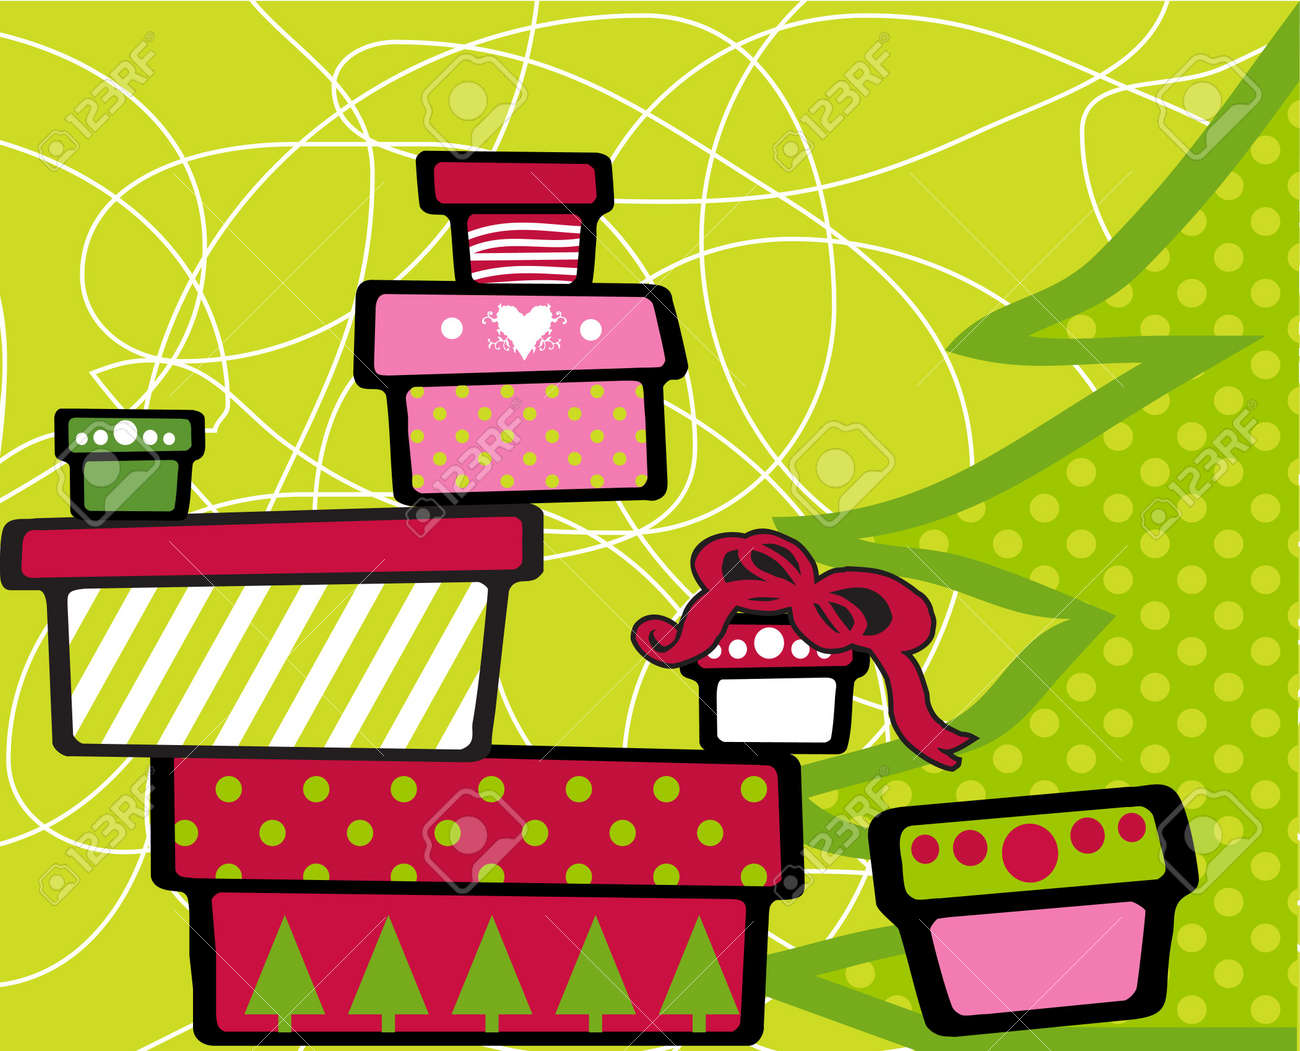 Gift Christmas boxes stacked on top of each other on festive green background Stock Photo - 2139018